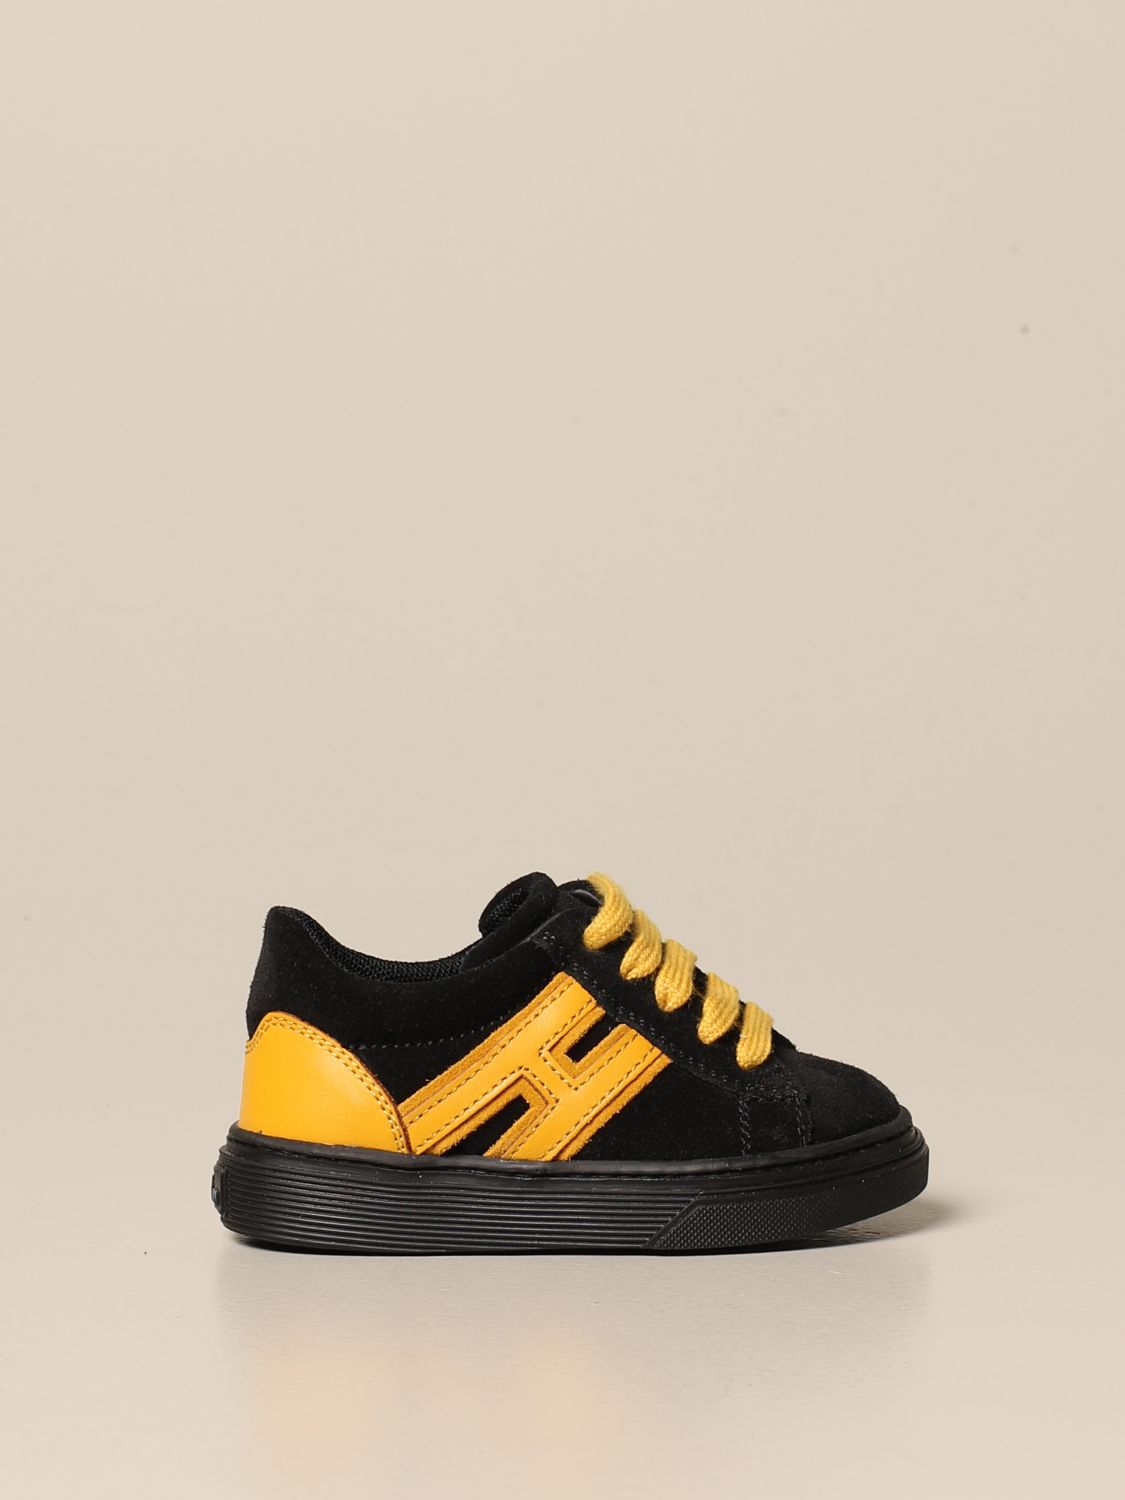 Details about  /Hogan sneakers baby h340 HXC3400K390HB90QBV suede shoes trainers gym